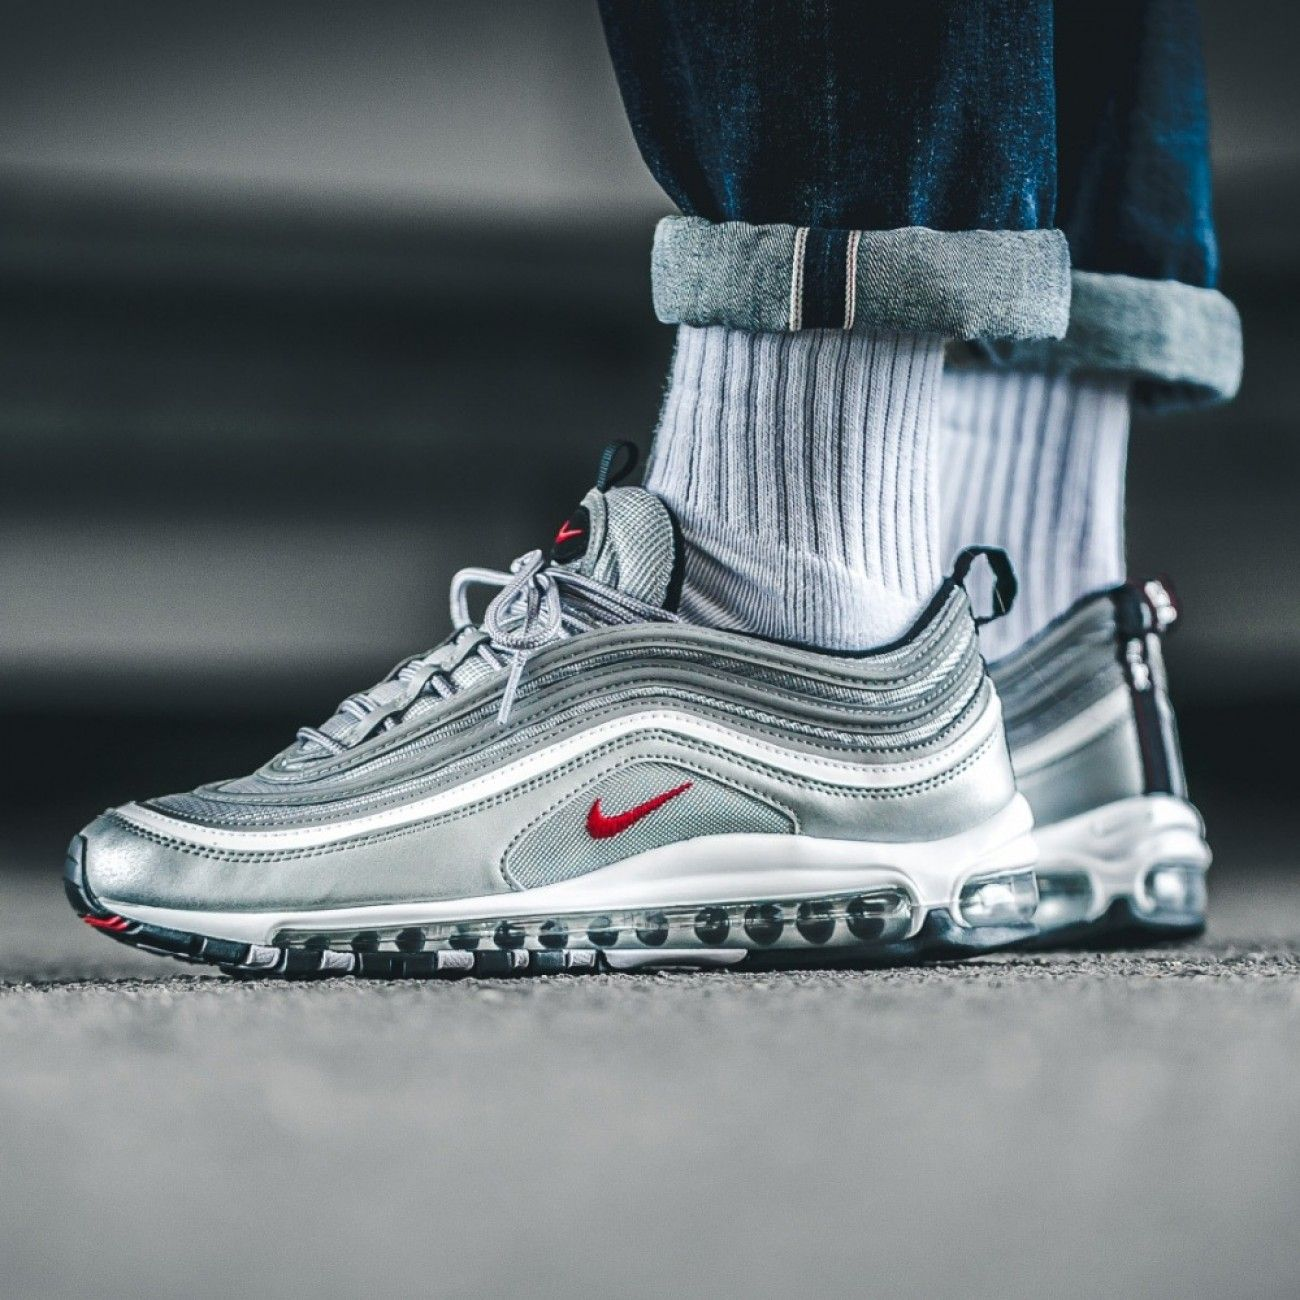 2f3ad3b8f9 Nike Air Max 97 OG QS 'Silver Bullet' in 2019 | Shoes | Nike air max ...